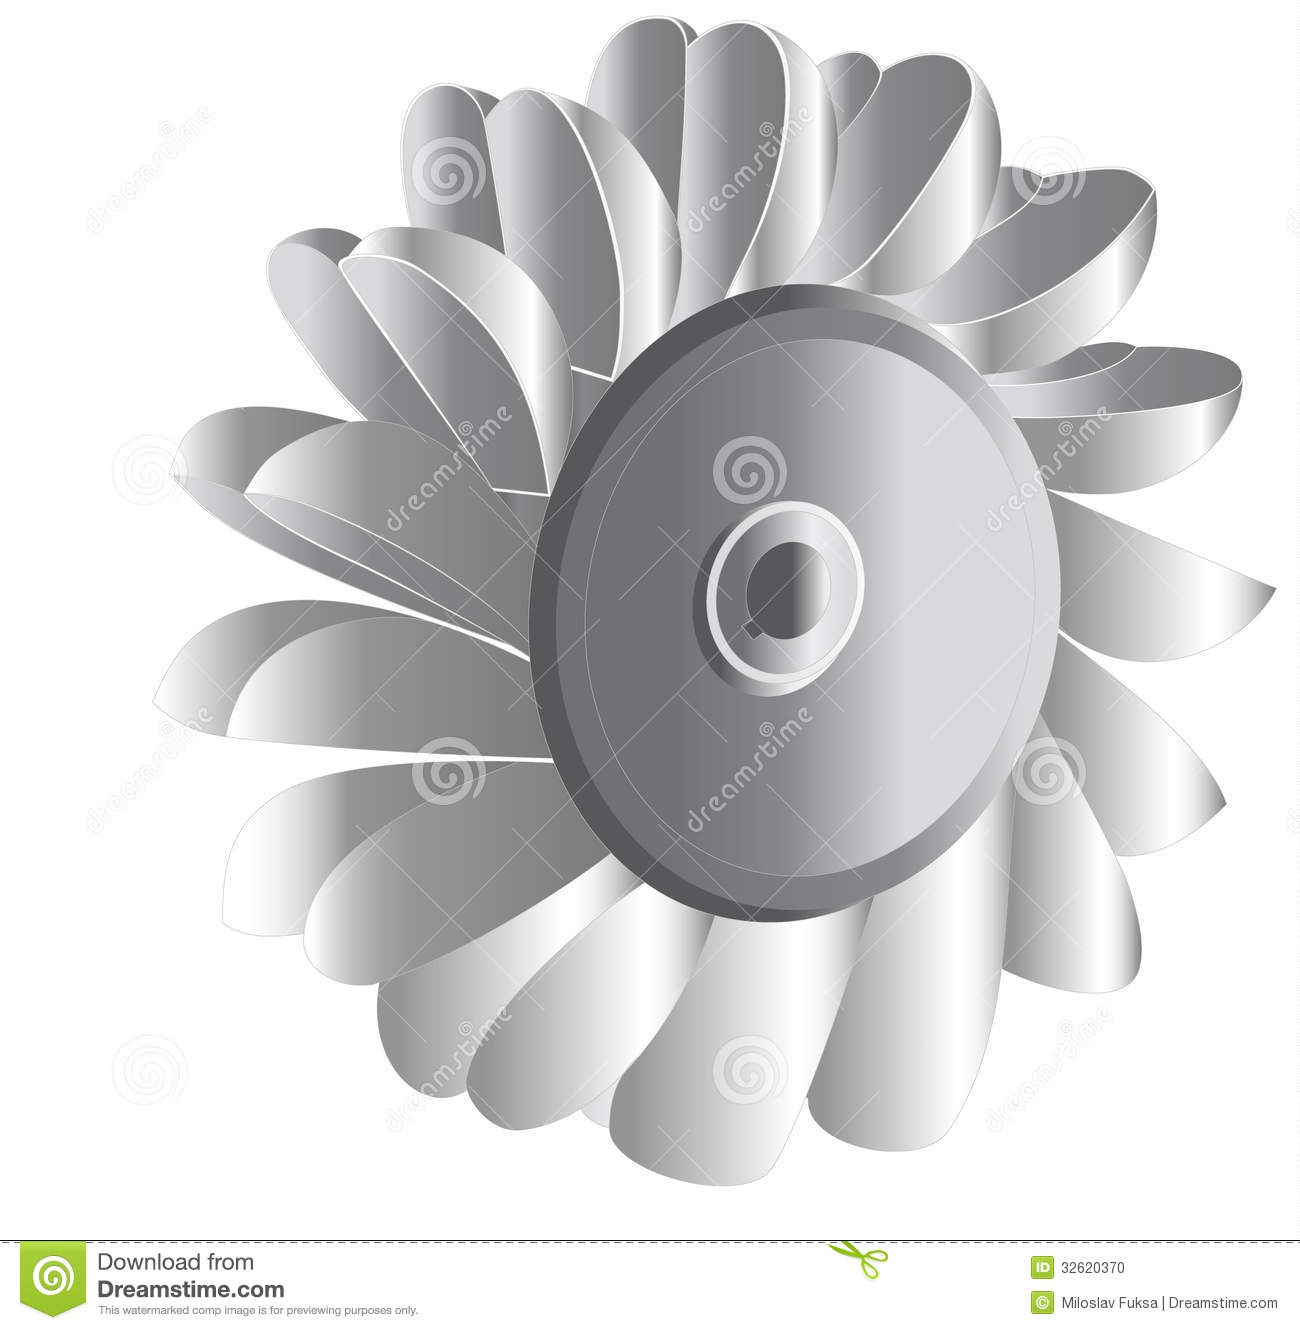 Water turbine clipart.